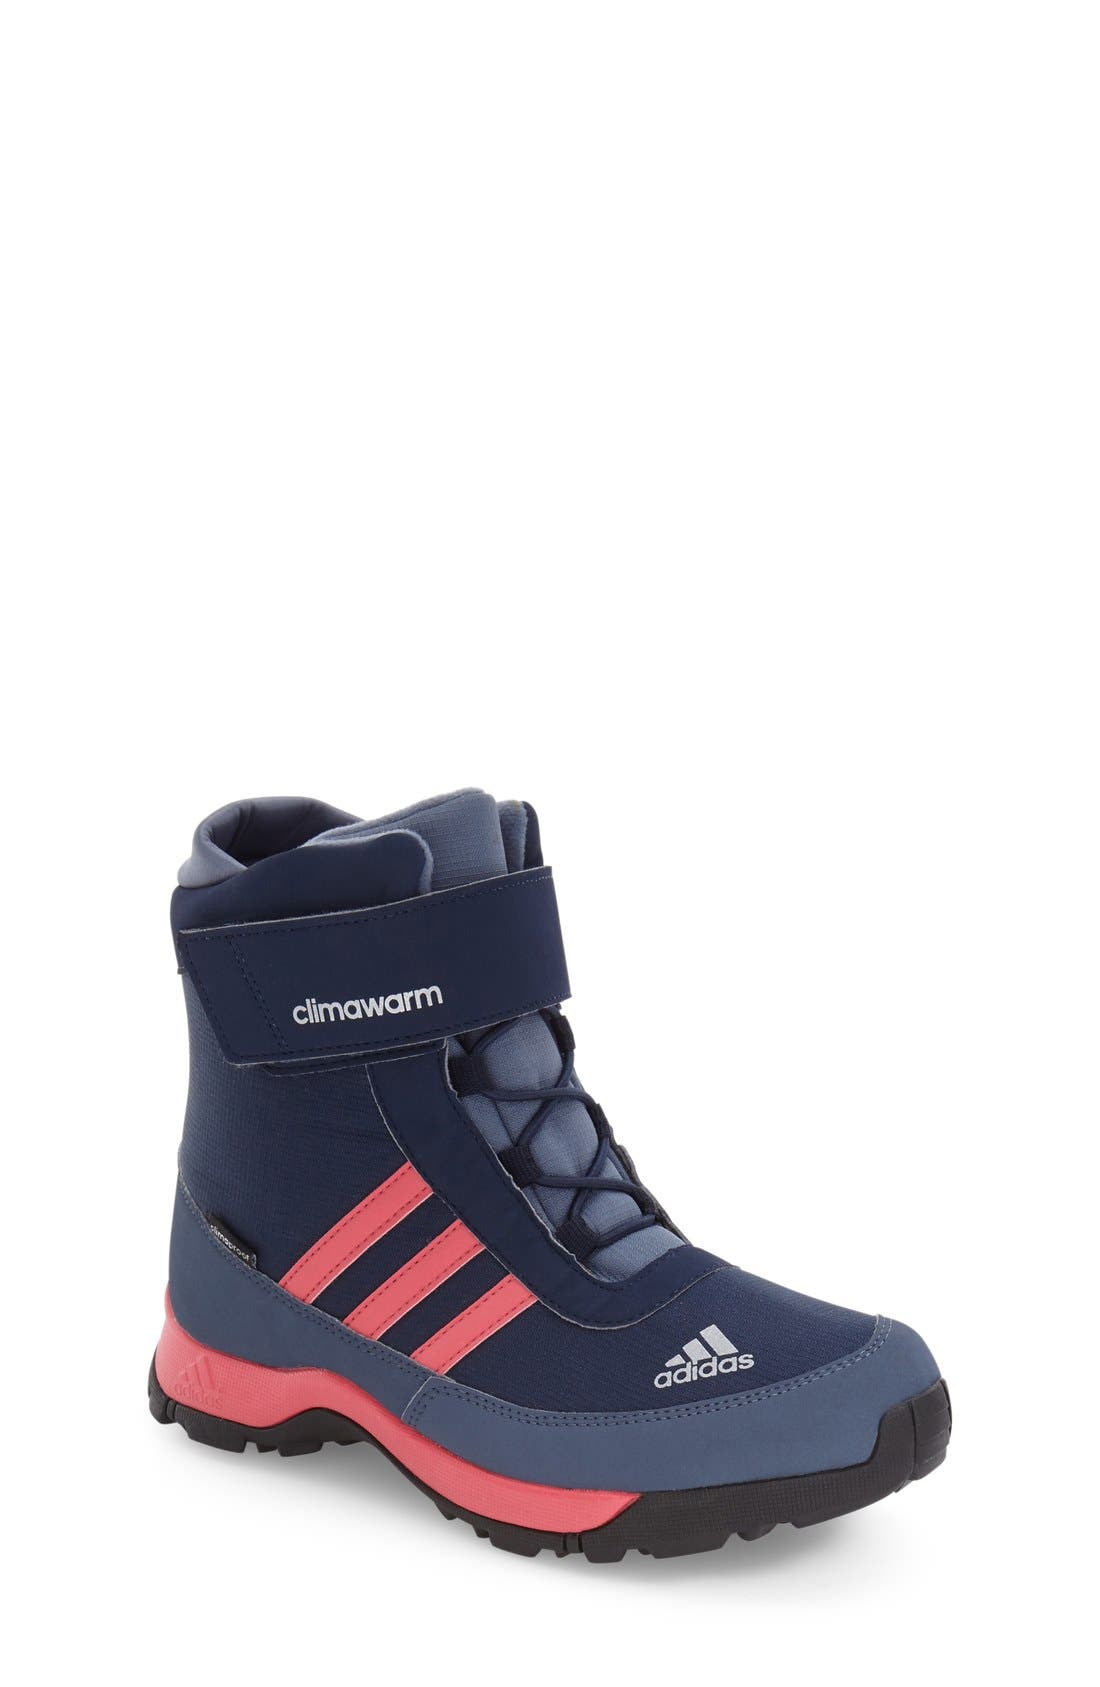 adidas AdiSnow Boot (Toddler, Little Kid & Big Kid)